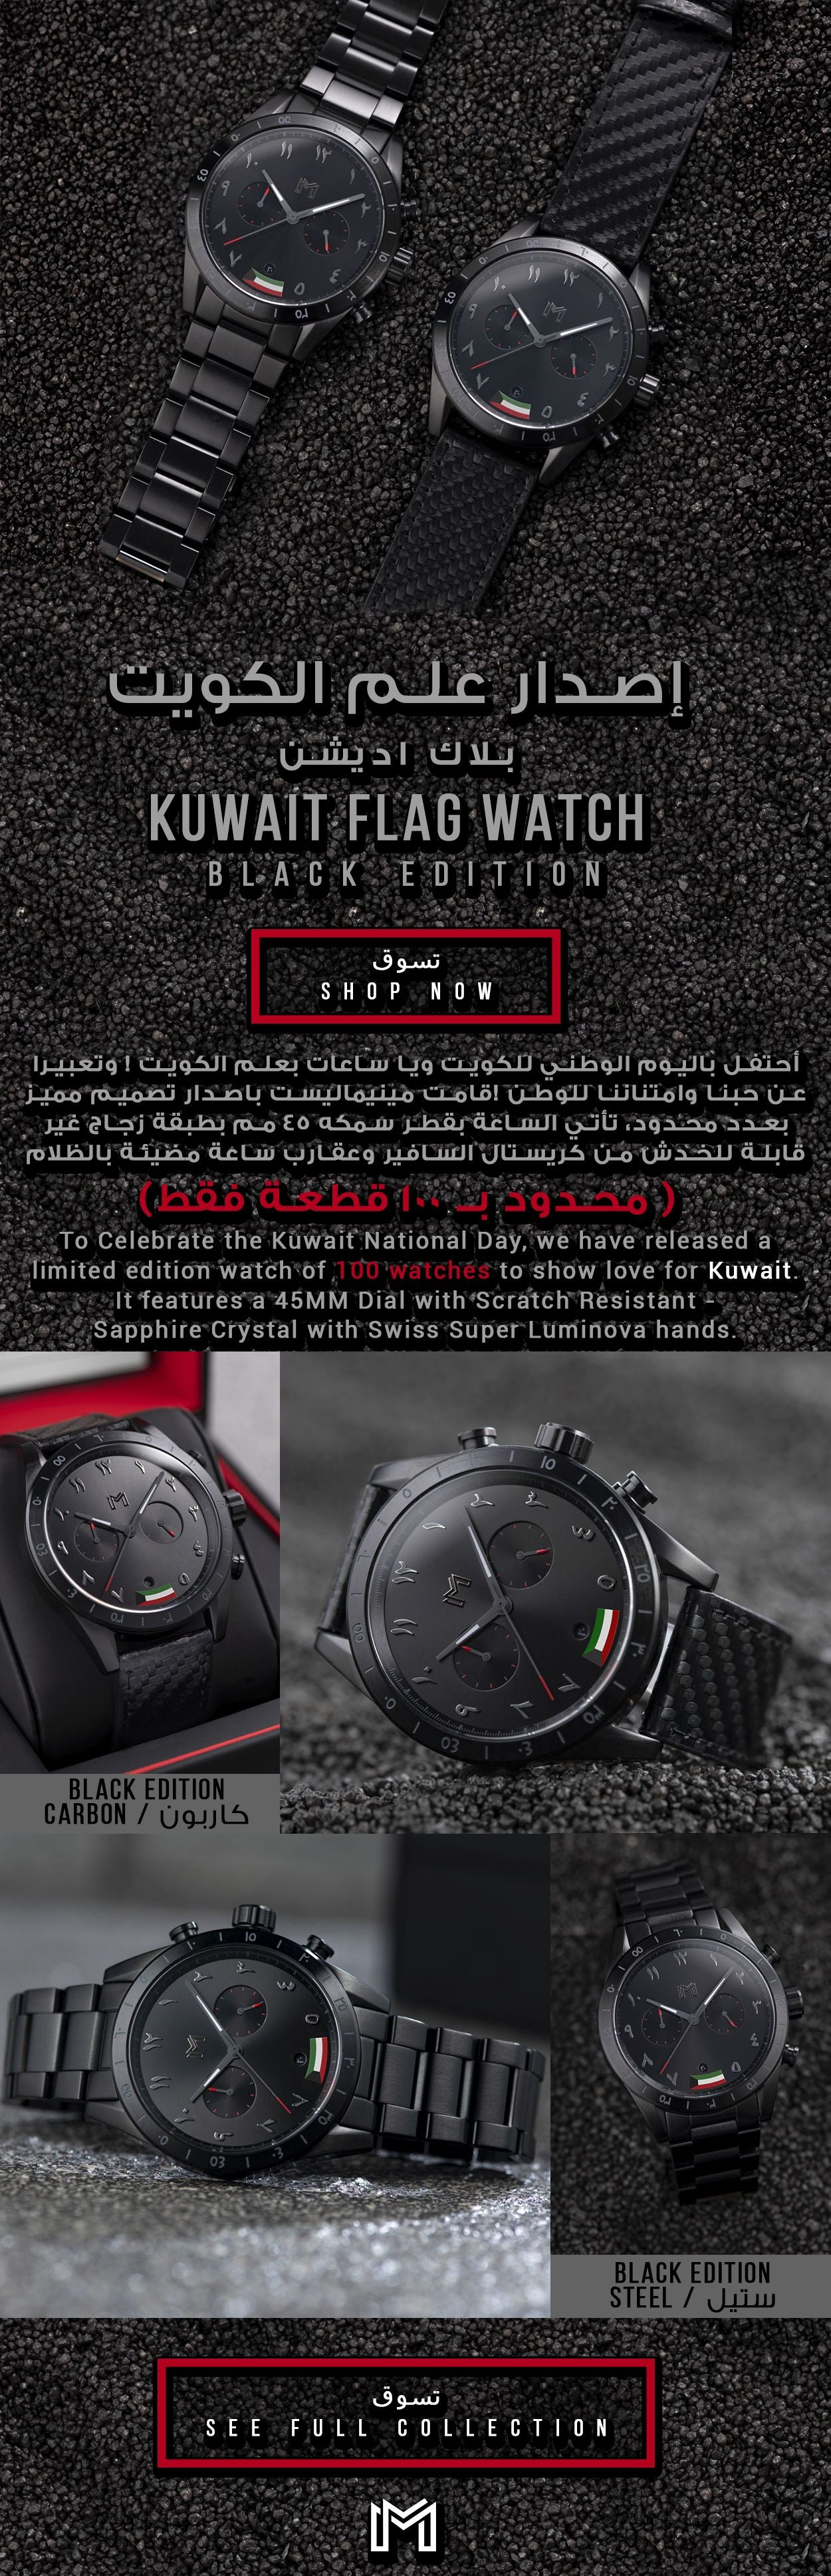 KUWAIT FLAG WATCH - BLACK EDITION | MINIMALIST LIFESTYLE | MINIMALIST ACCESSORIES | MINIMALIST.AE